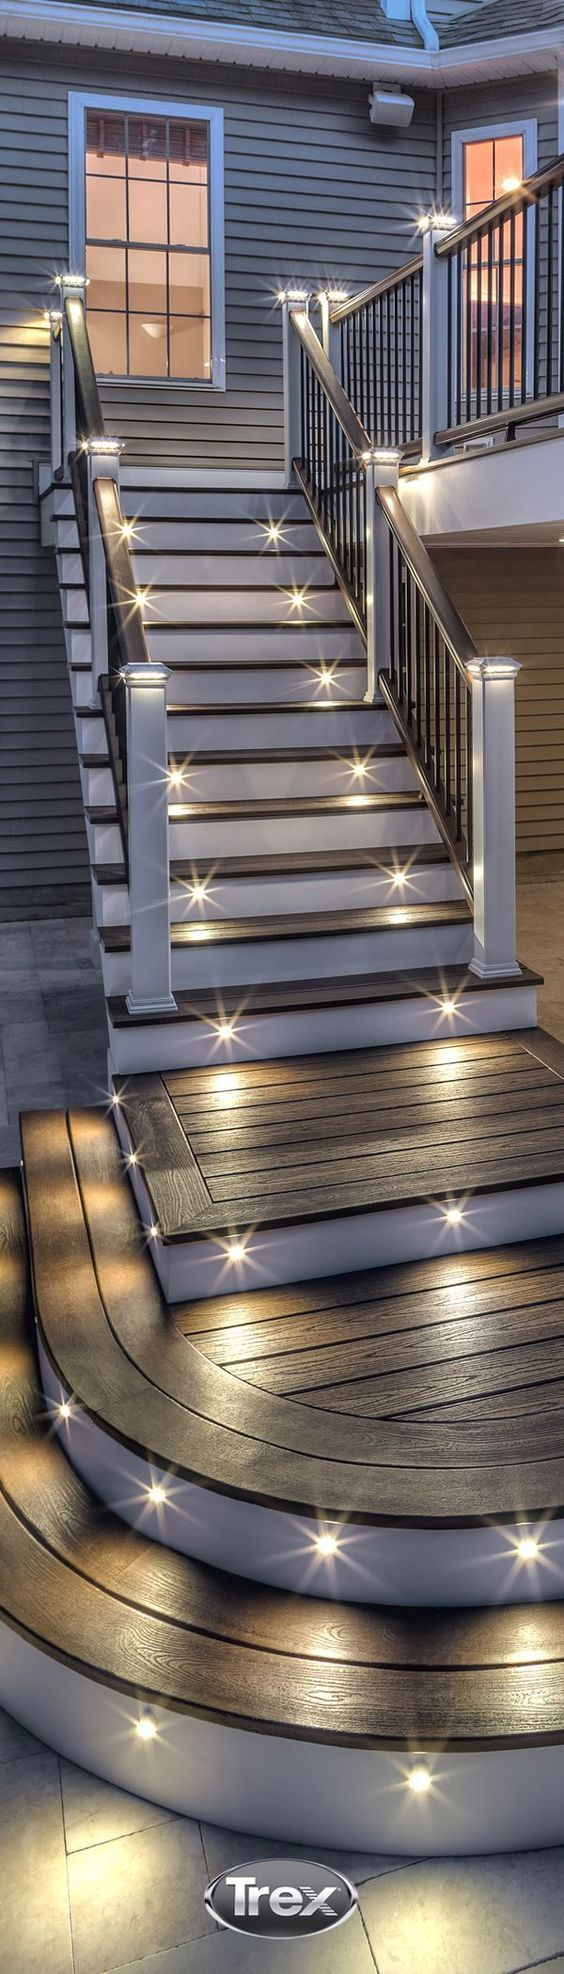 25+ best ideas about Outdoor Stair Railing on Pinterest ...